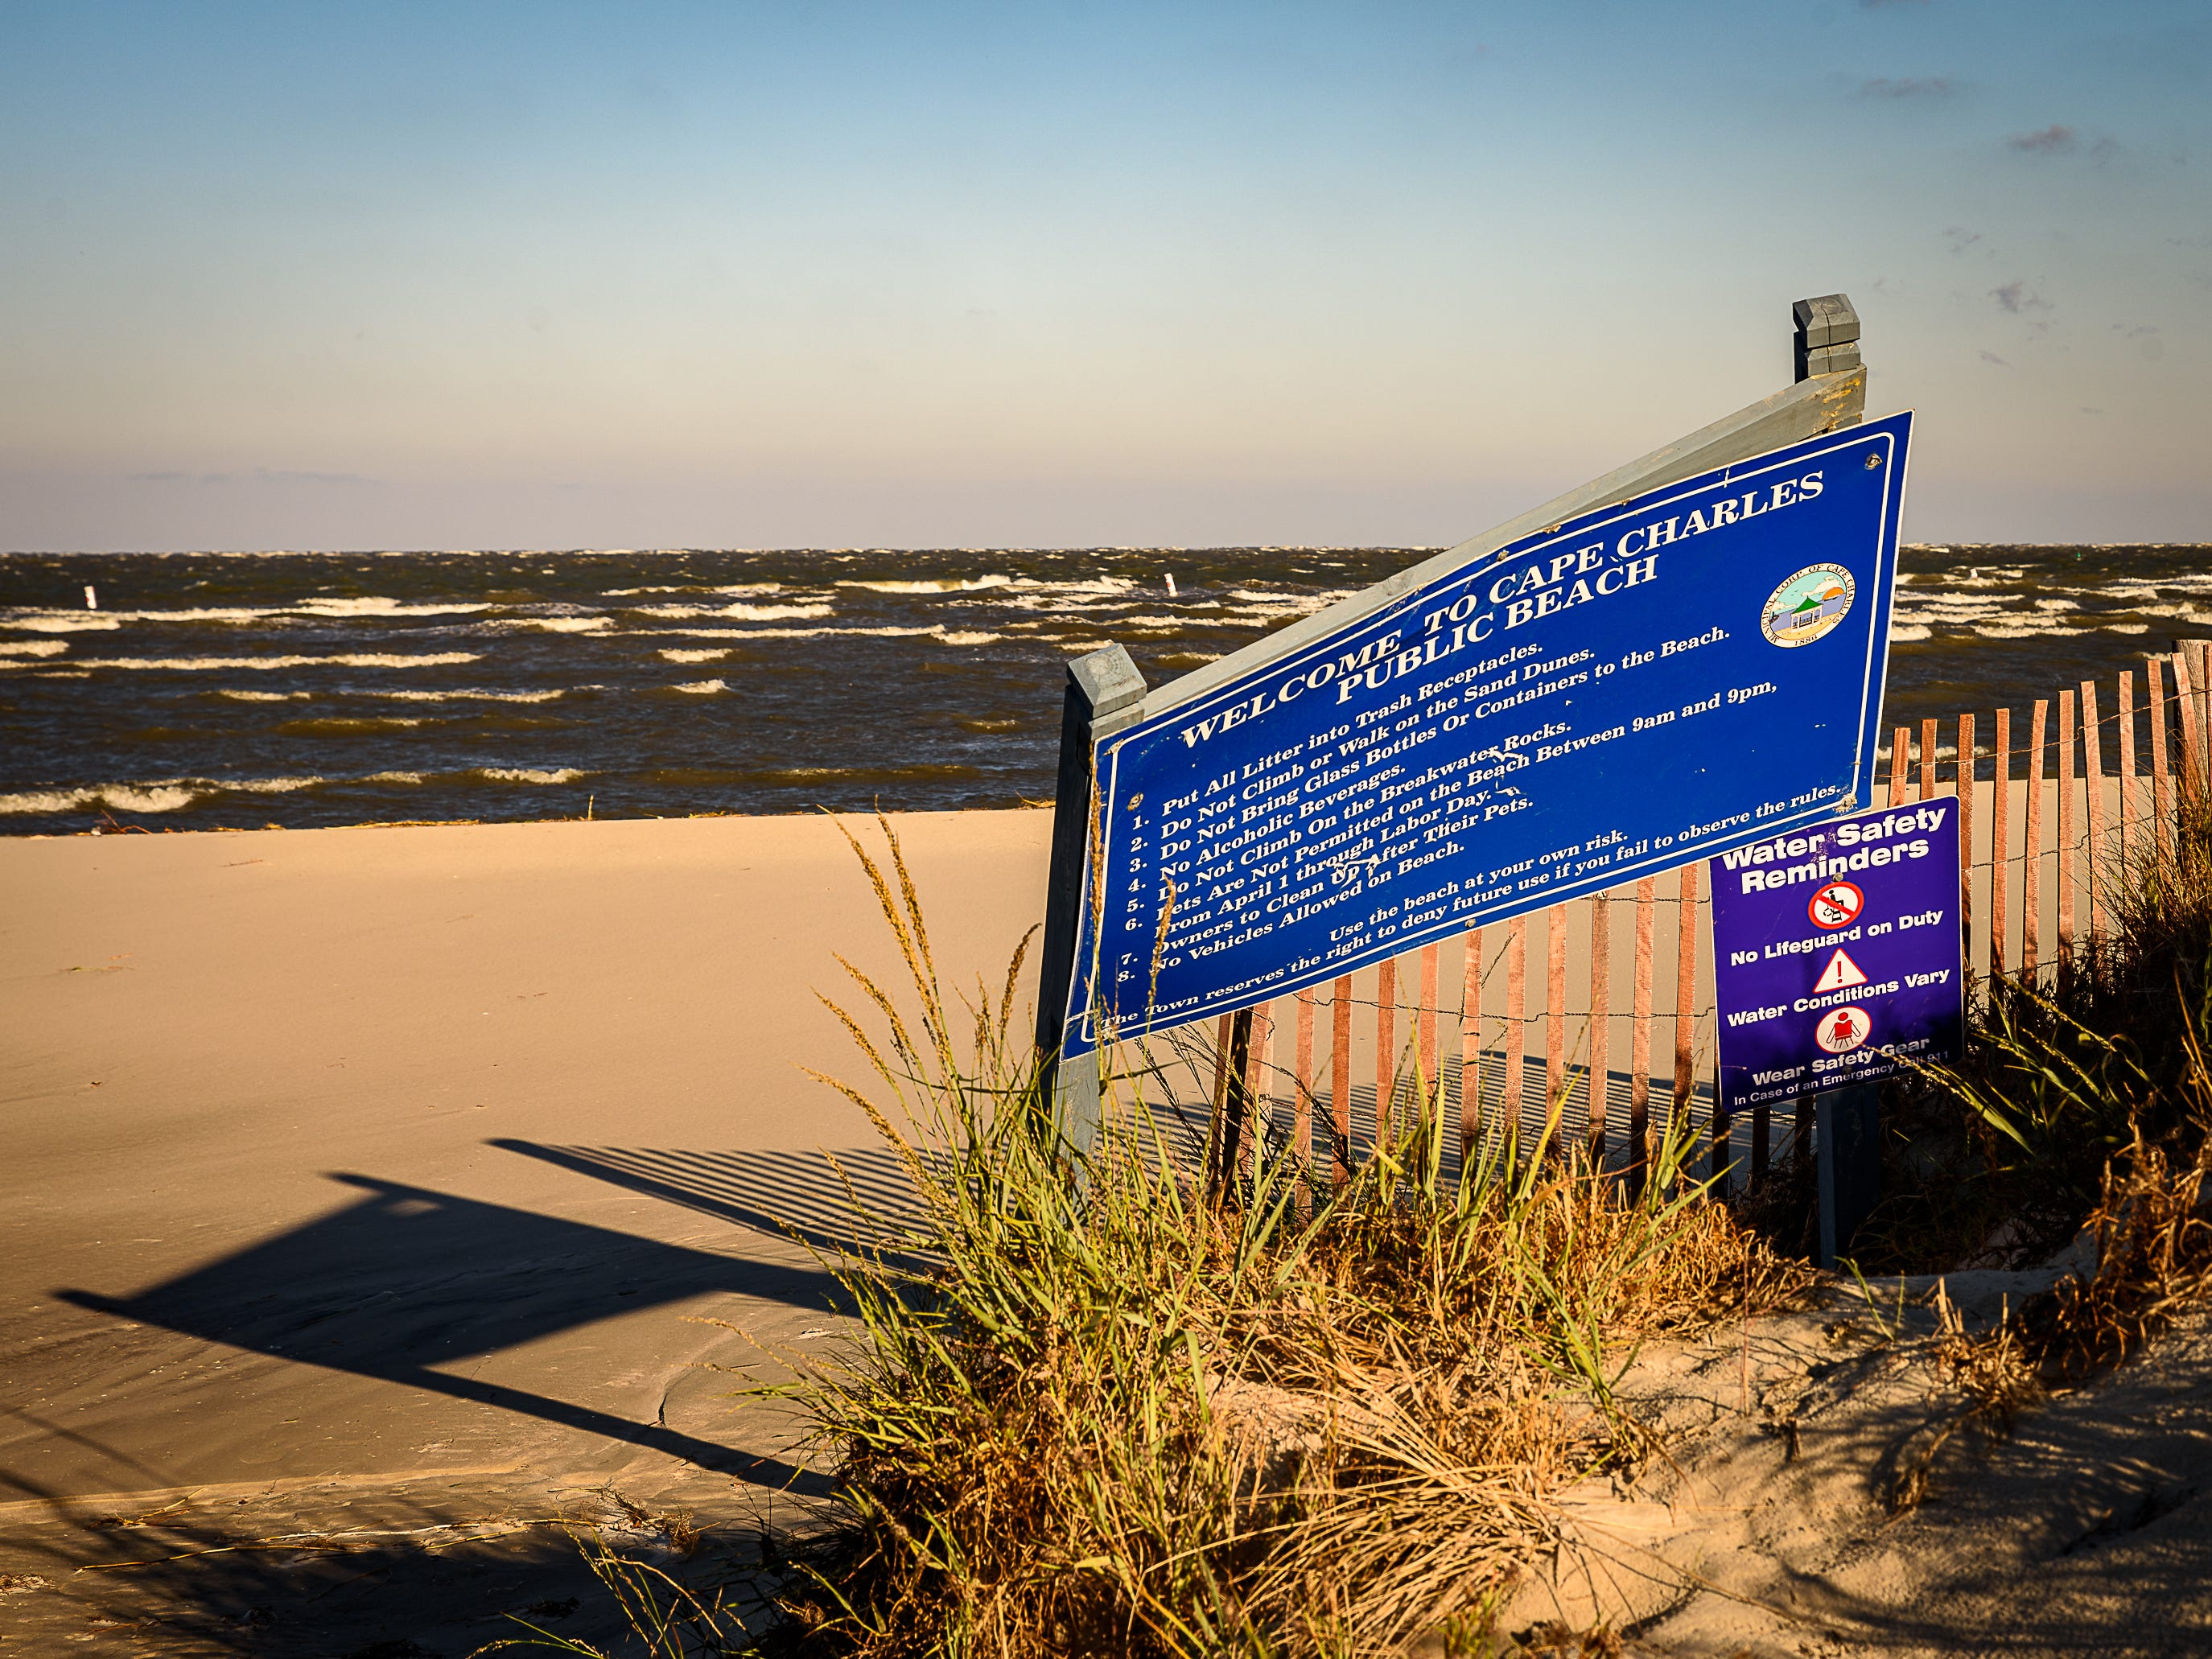 The sign at Cape Charles Beach suffered damage from an overnight storm on Oct. 12, 2018.